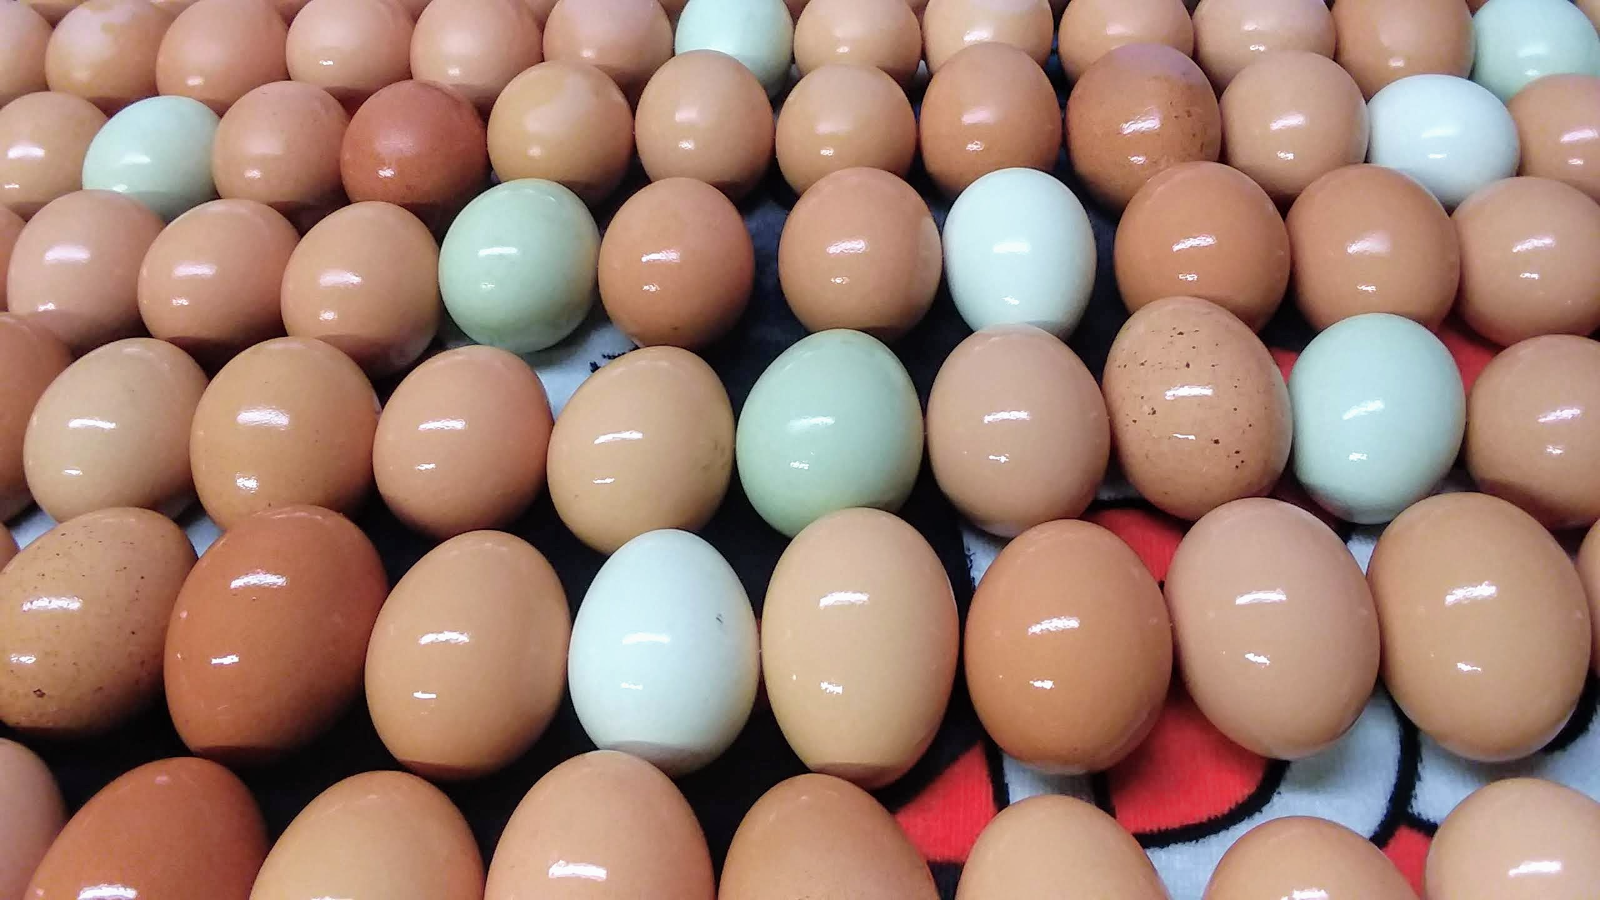 pasture-raised-organic-eggs-large